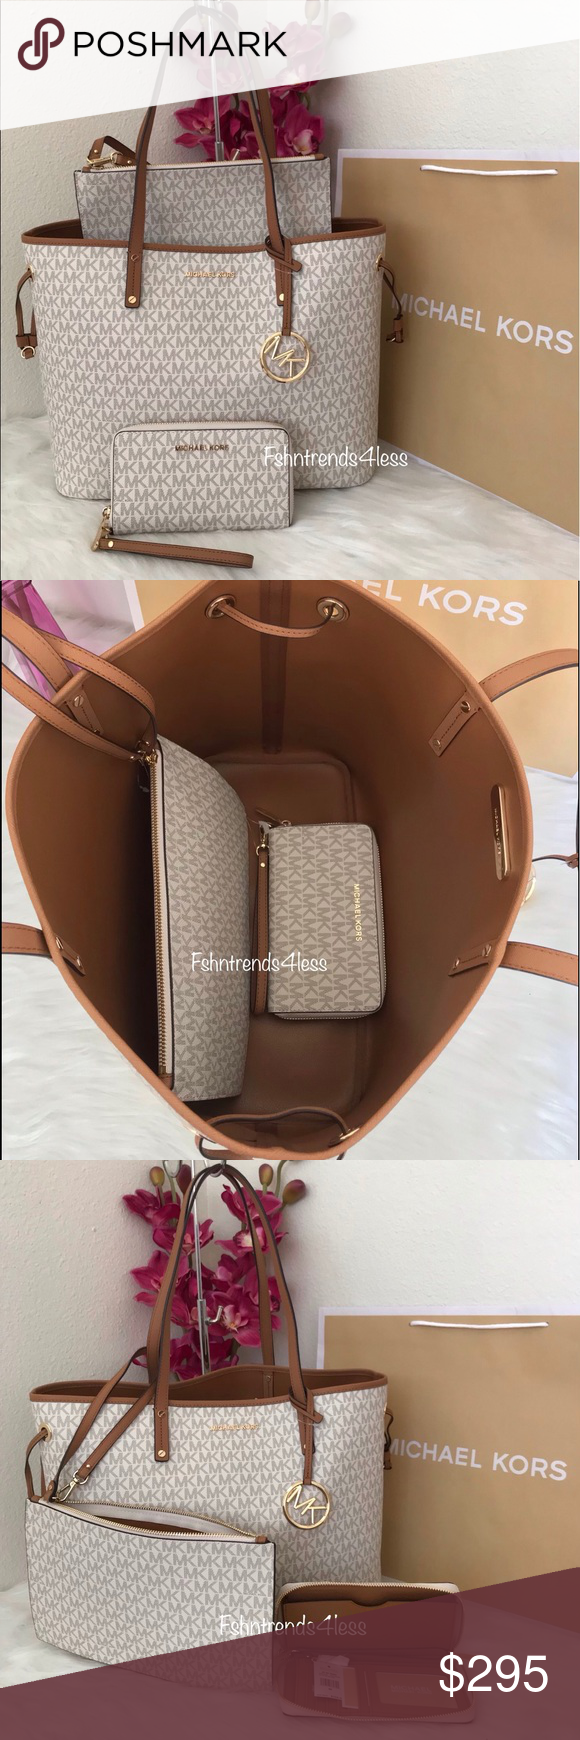 58cd341e1f54c8 ✨💯🆕Michael Kors Large Drawstring Tote & Wallet✨ ✅100% Authentic Brand New  with Tag Michael Kors Jet Set Travel Large Drawstring Tote Color: ...